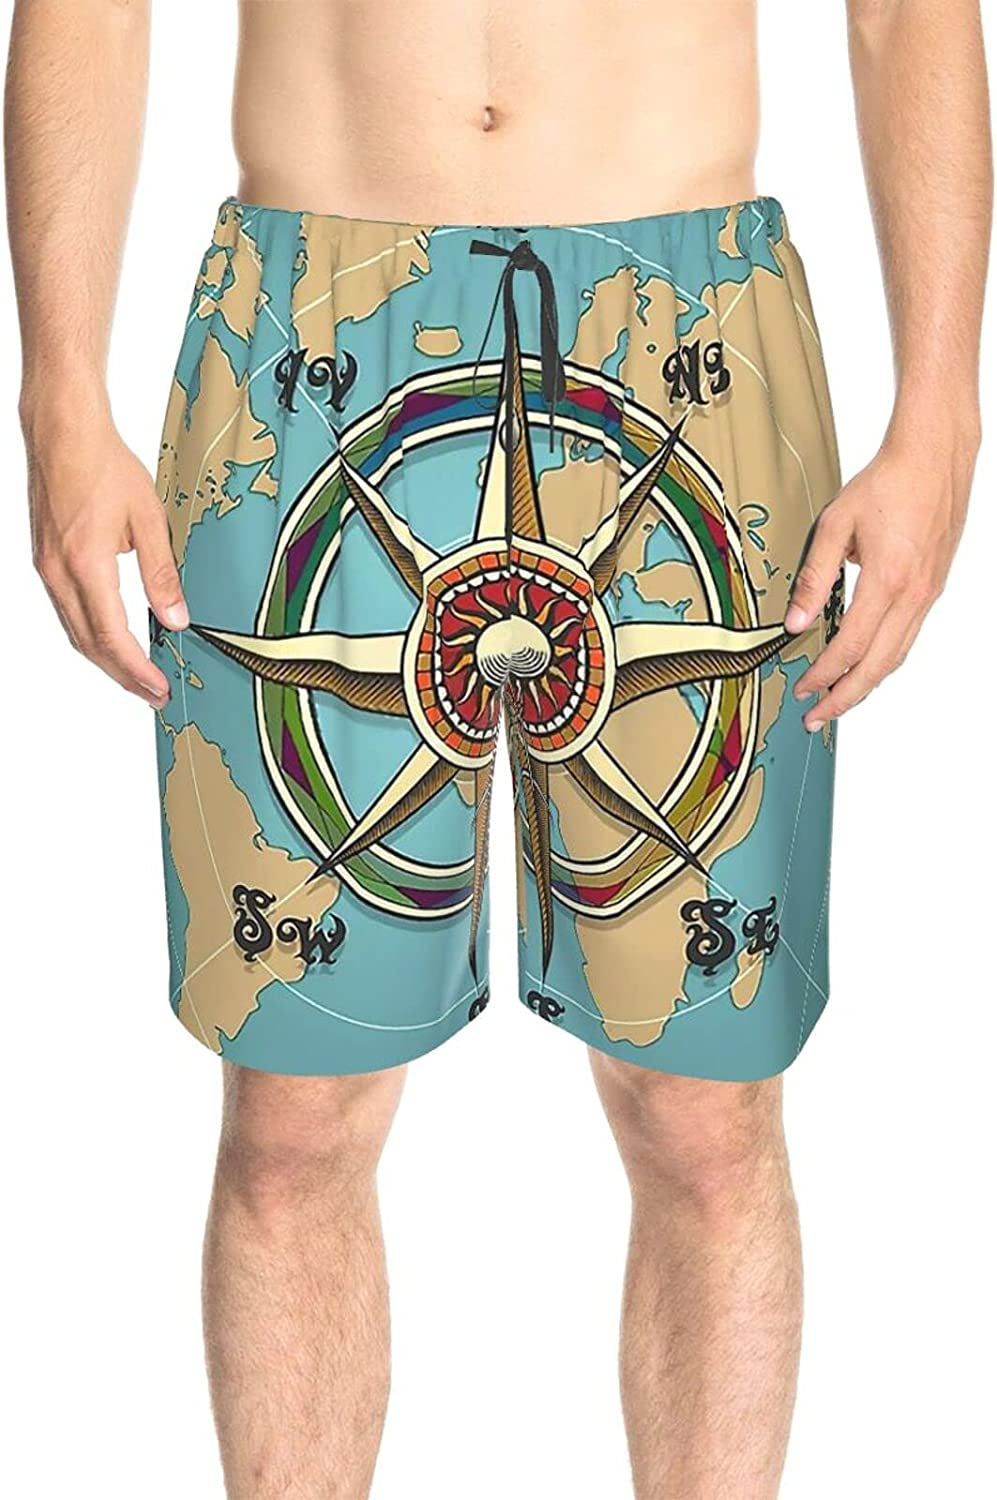 Mens Swim Trunks Compass and World Map Swim Boardshorts Drawstring Elastic Surfing Board Shorts with Pockets